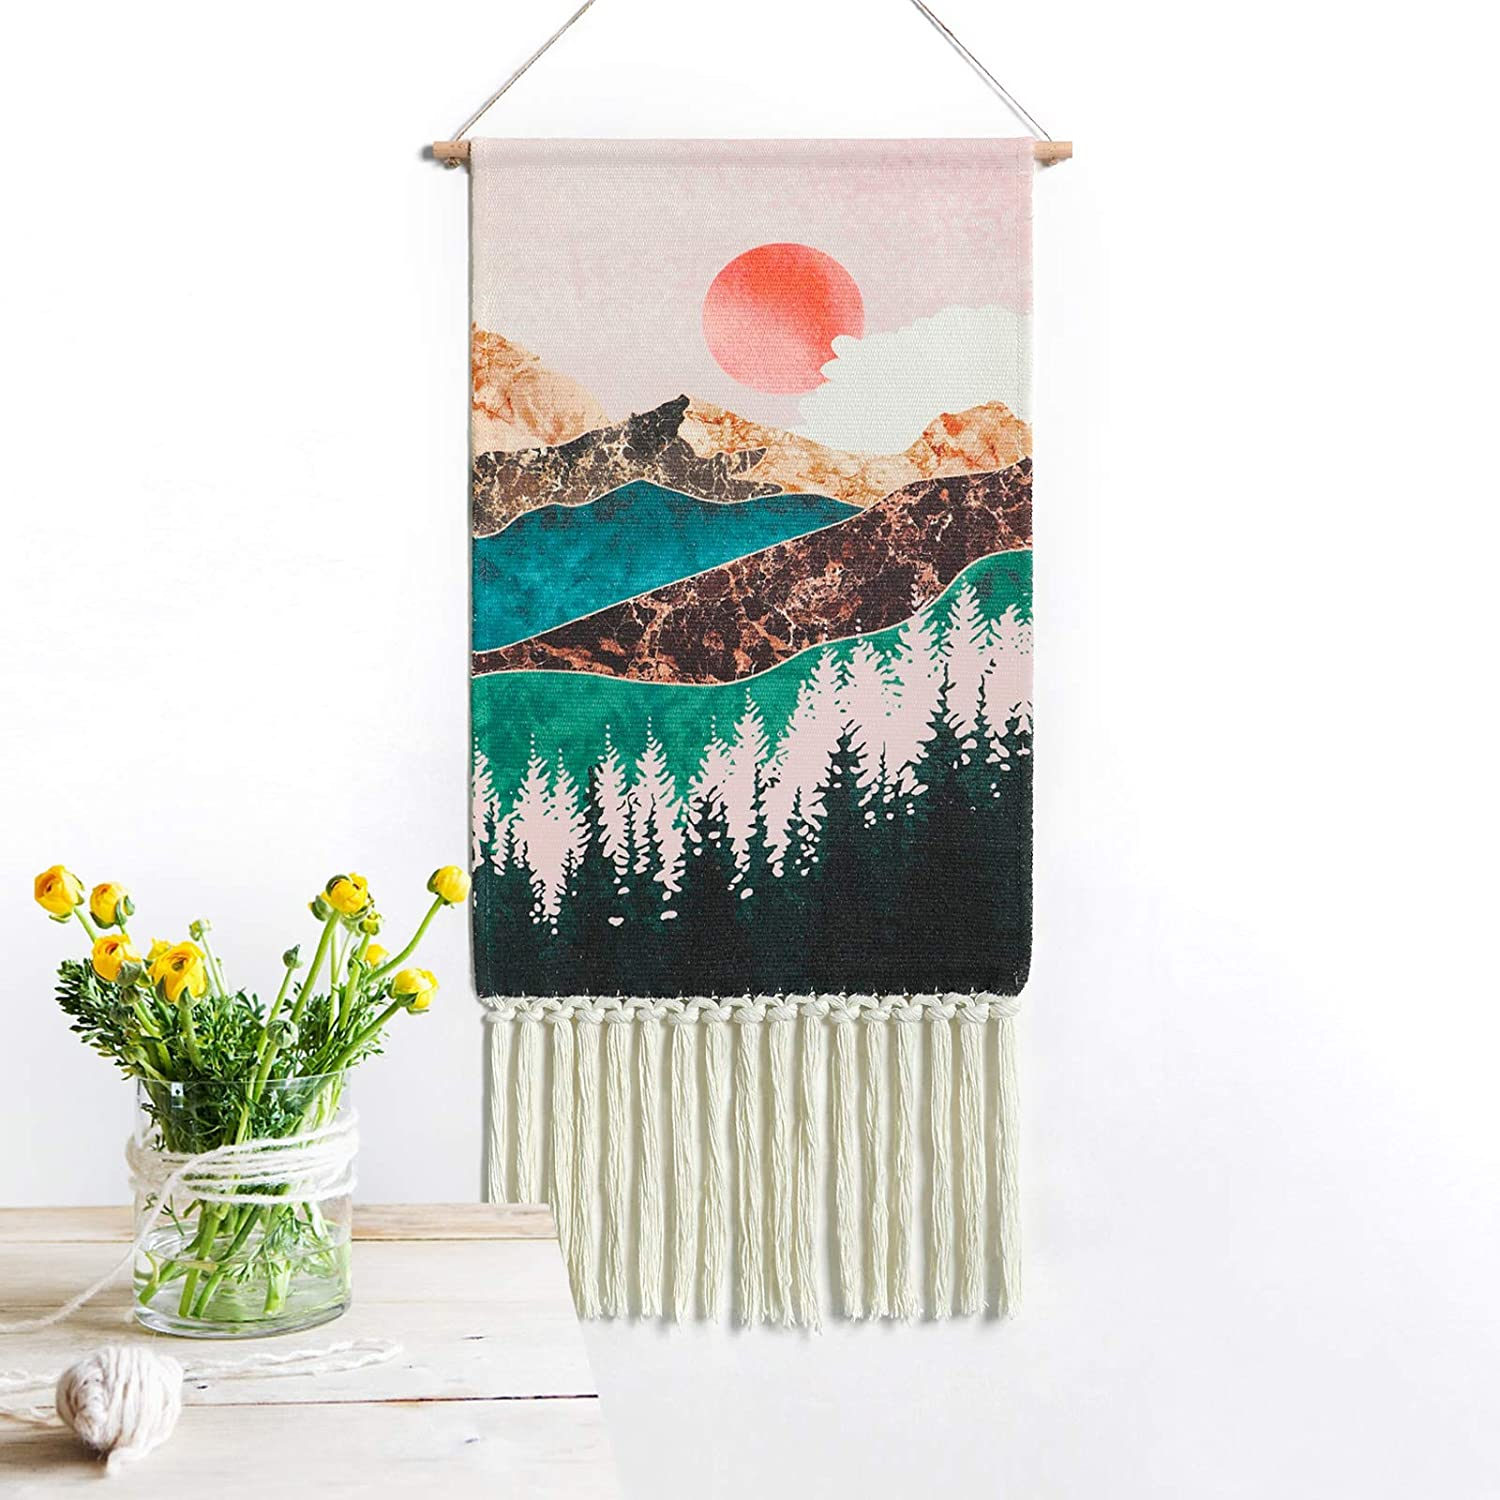 Dremisland Mountain Tapestry Forest Tree Tapestry Nature Landscape Tapestry Wall Hanging - Boho Chic Bohemian Wall Decor For Home (Sunset)